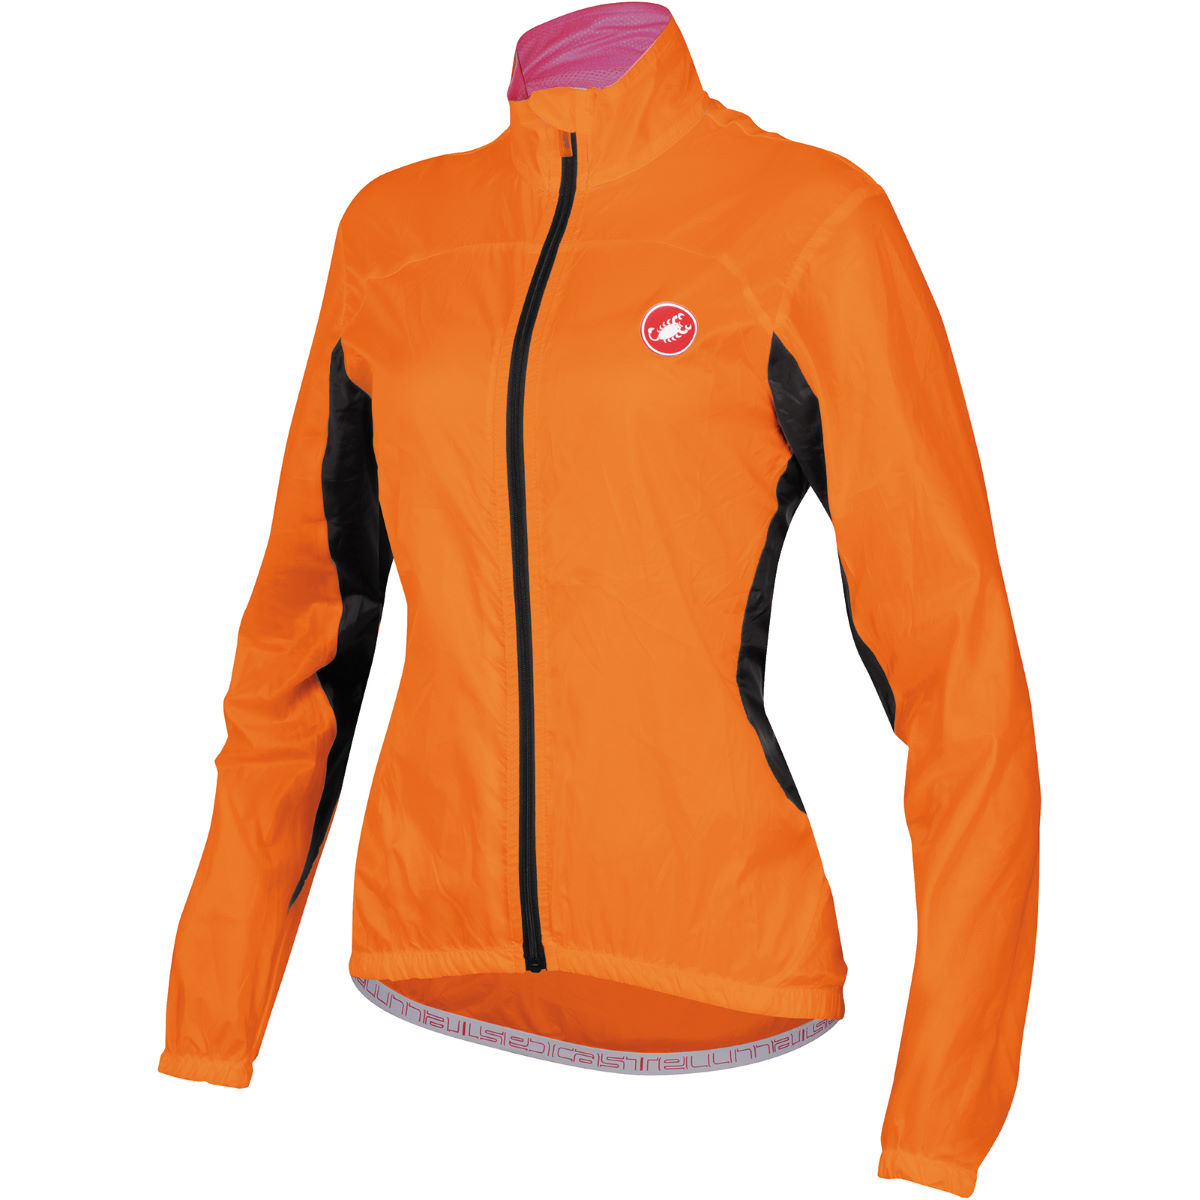 Veste Femme Castelli Velo - XS Orange Coupe-vents vélo